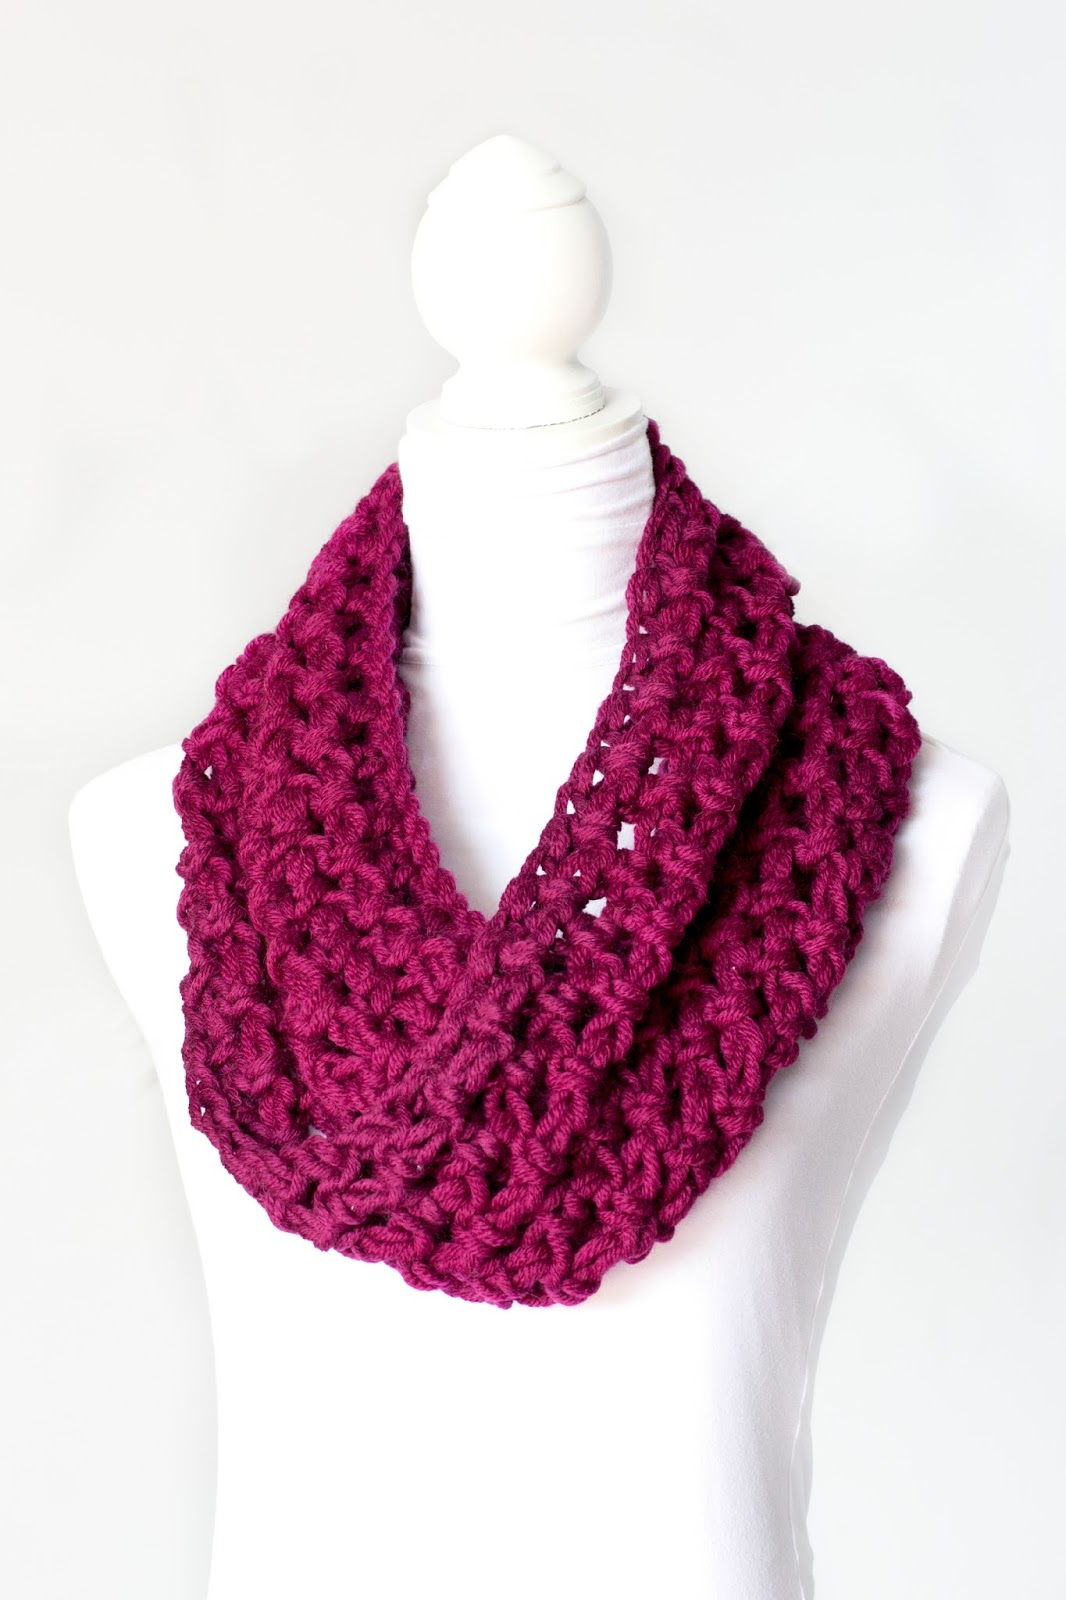 Free Crochet Patterns Cowls : free crochet pattern bulky stacked shell cowl shrug ...